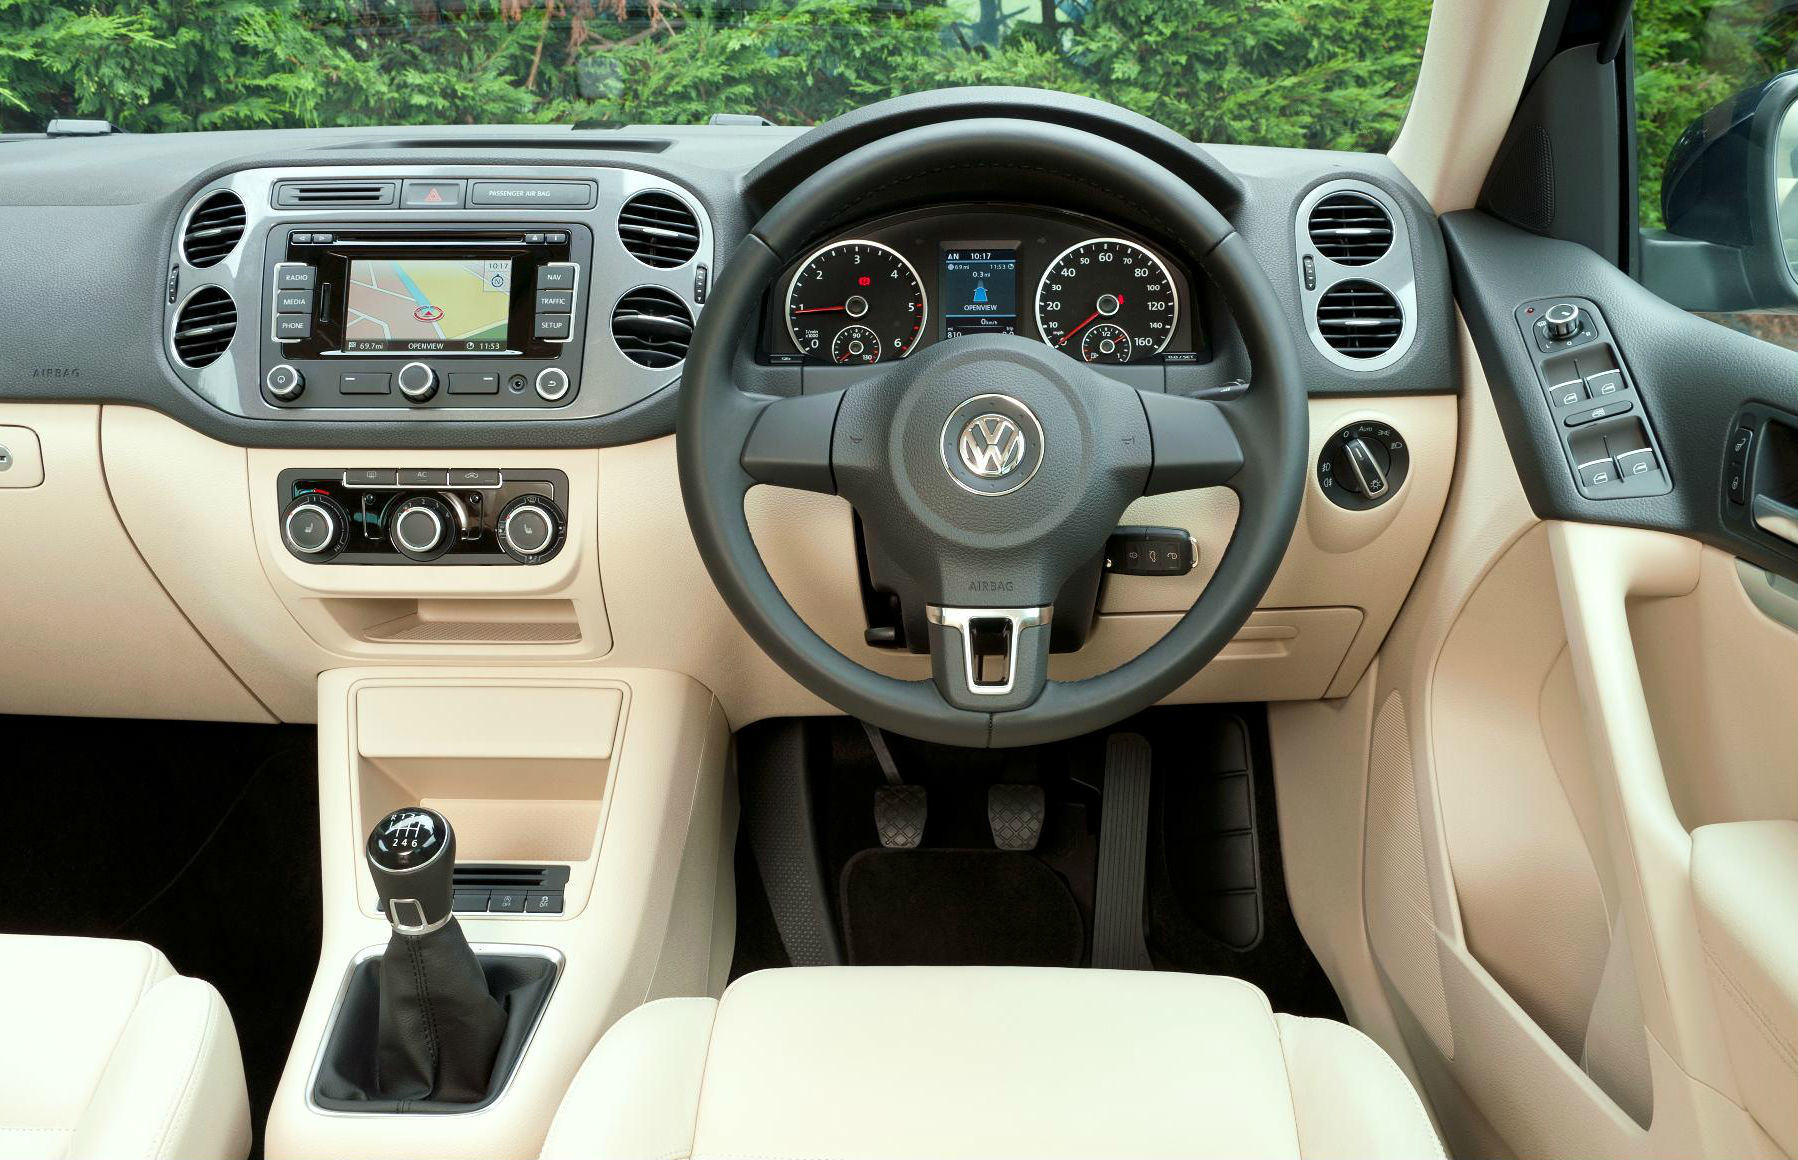 image of a volkswagen tiguan car interior